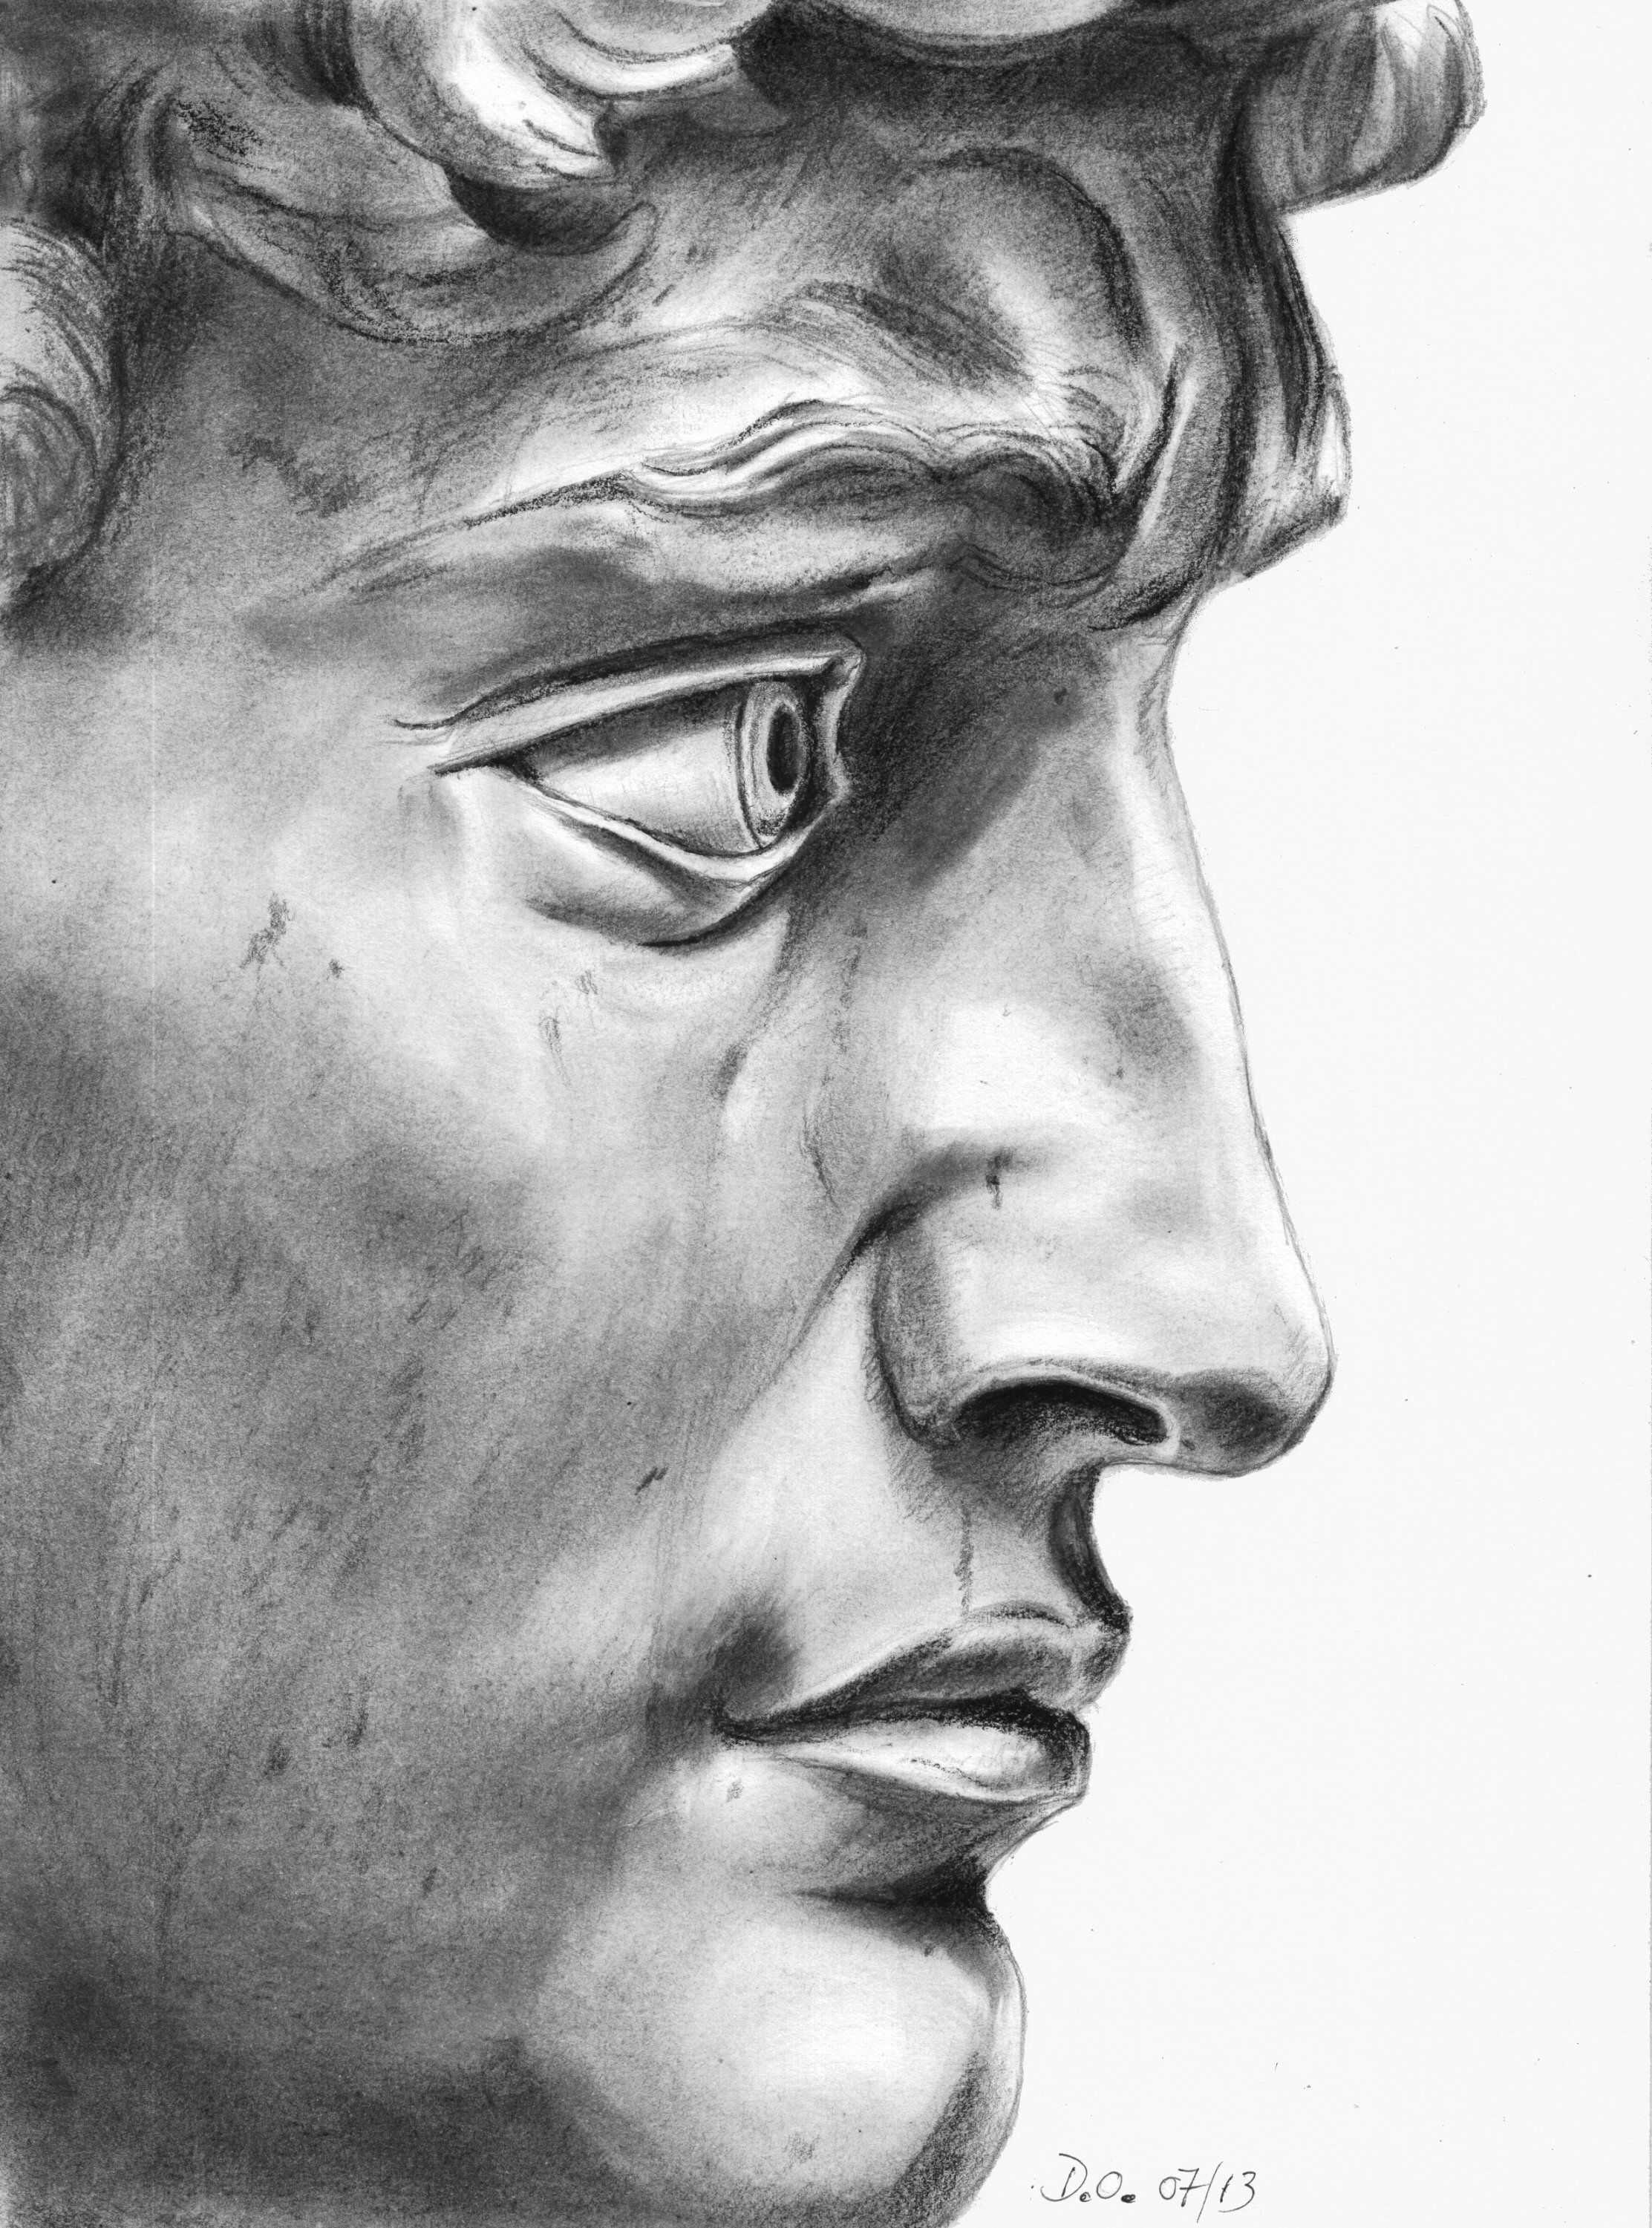 David de michel ange statue statues grecques art puns pencil art